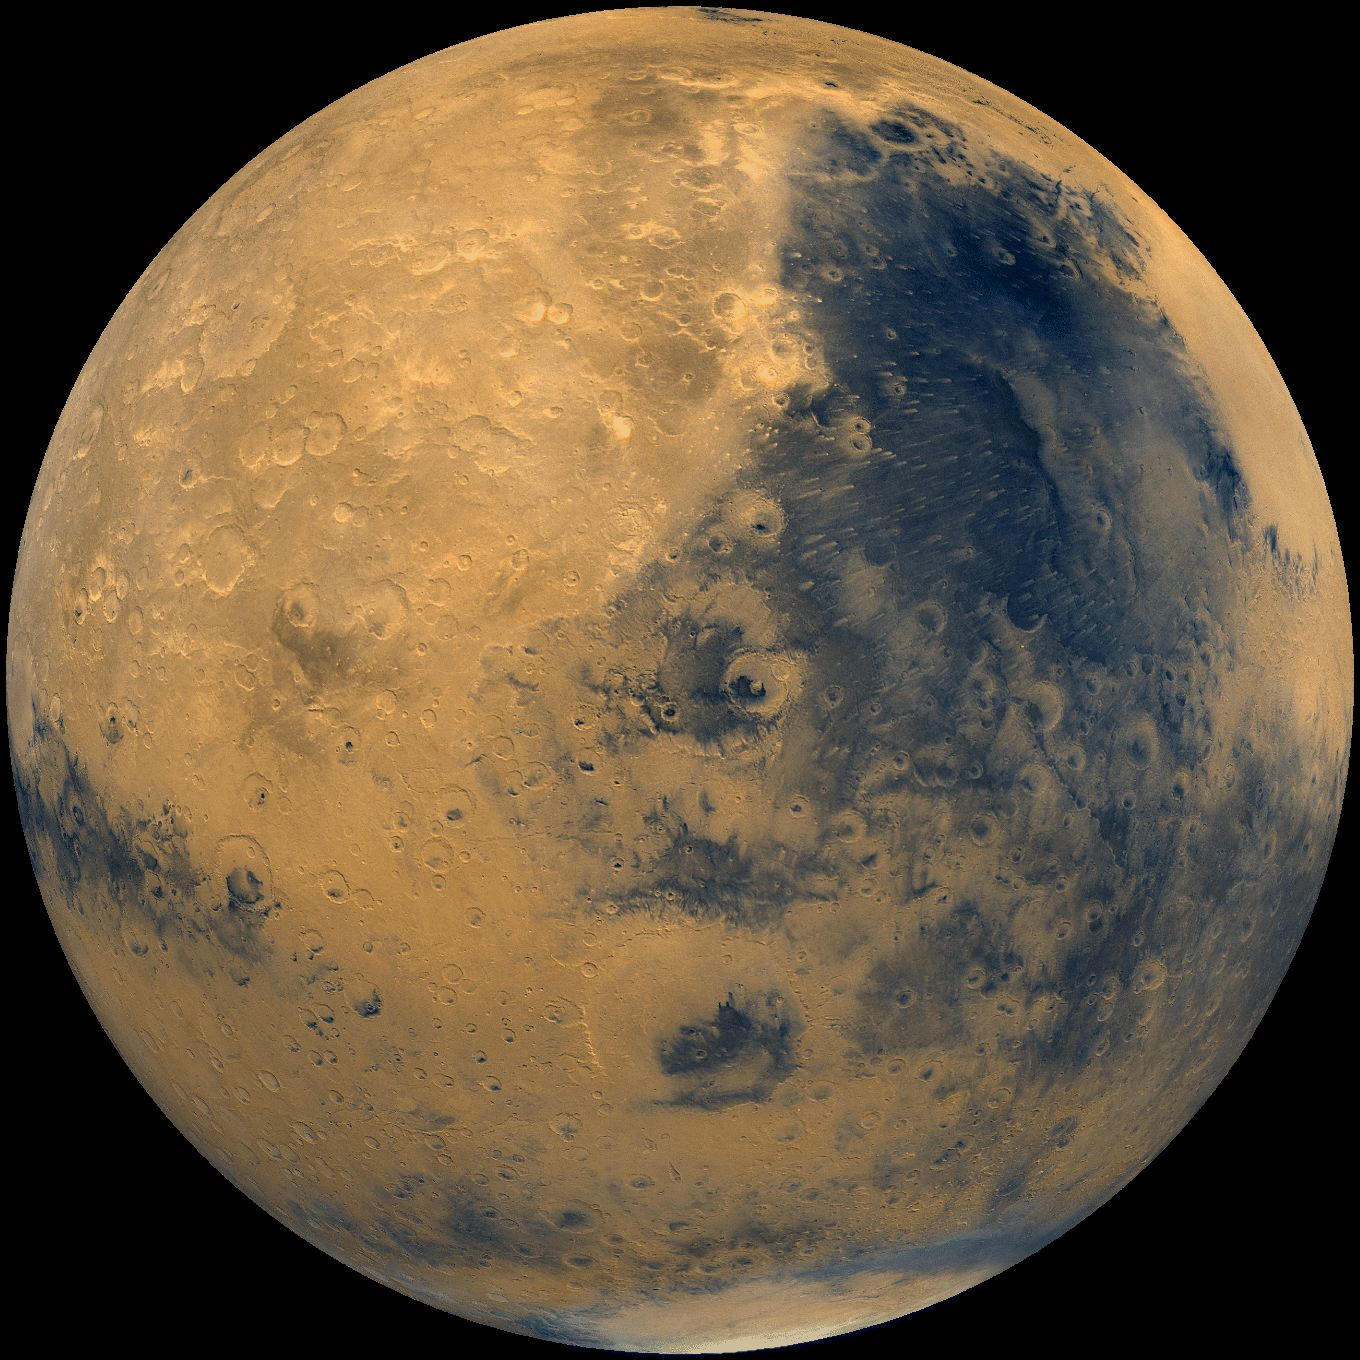 Mars Hides More Water Than Thought, Study Suggests